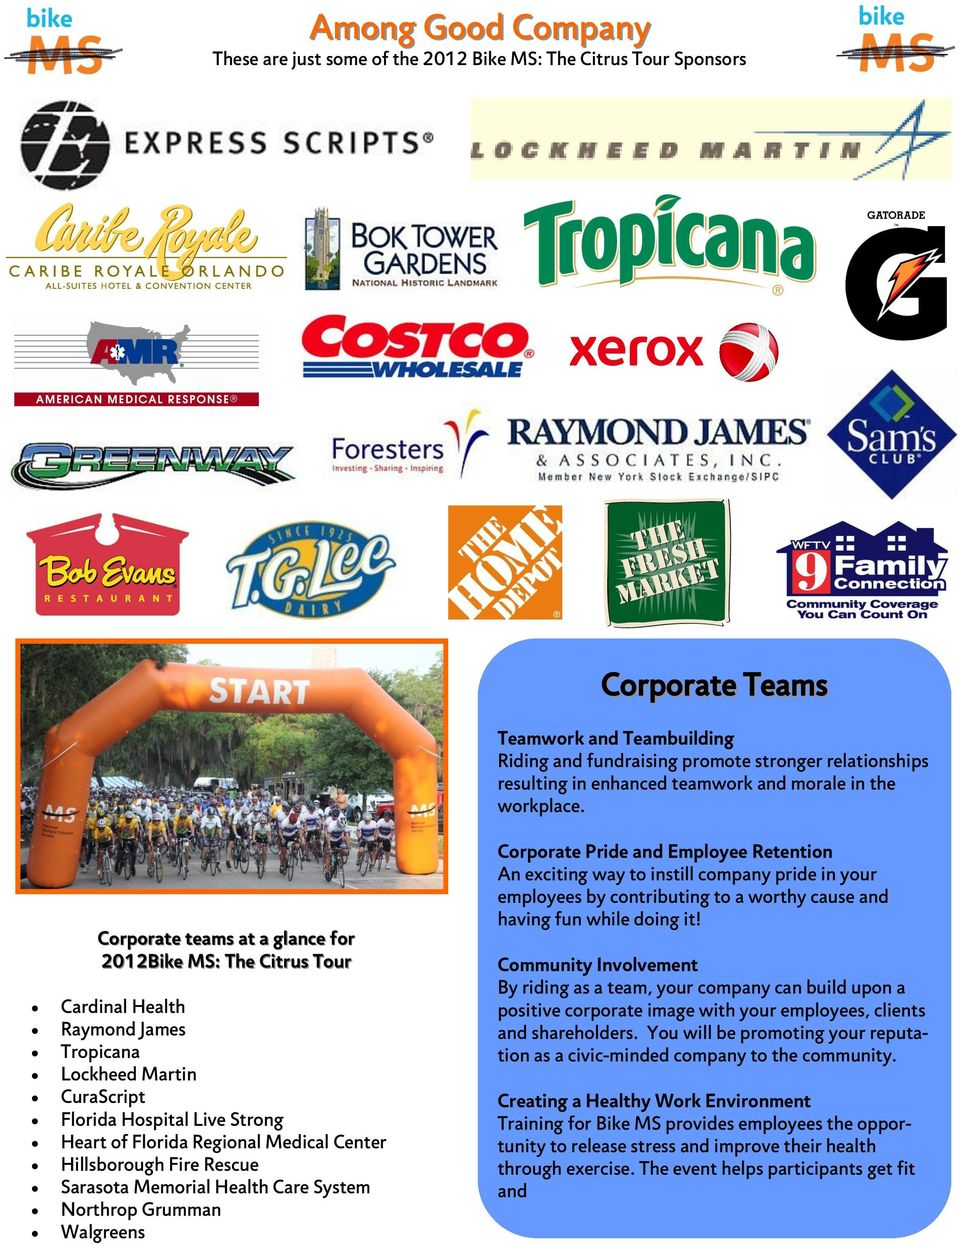 Corporate teams at a glance for 2012Bike MS: The Citrus Tour Cardinal Health Raymond James Tropicana Lockheed Martin CuraScript Florida Hospital Live Strong Heart of Florida Regional Medical Center